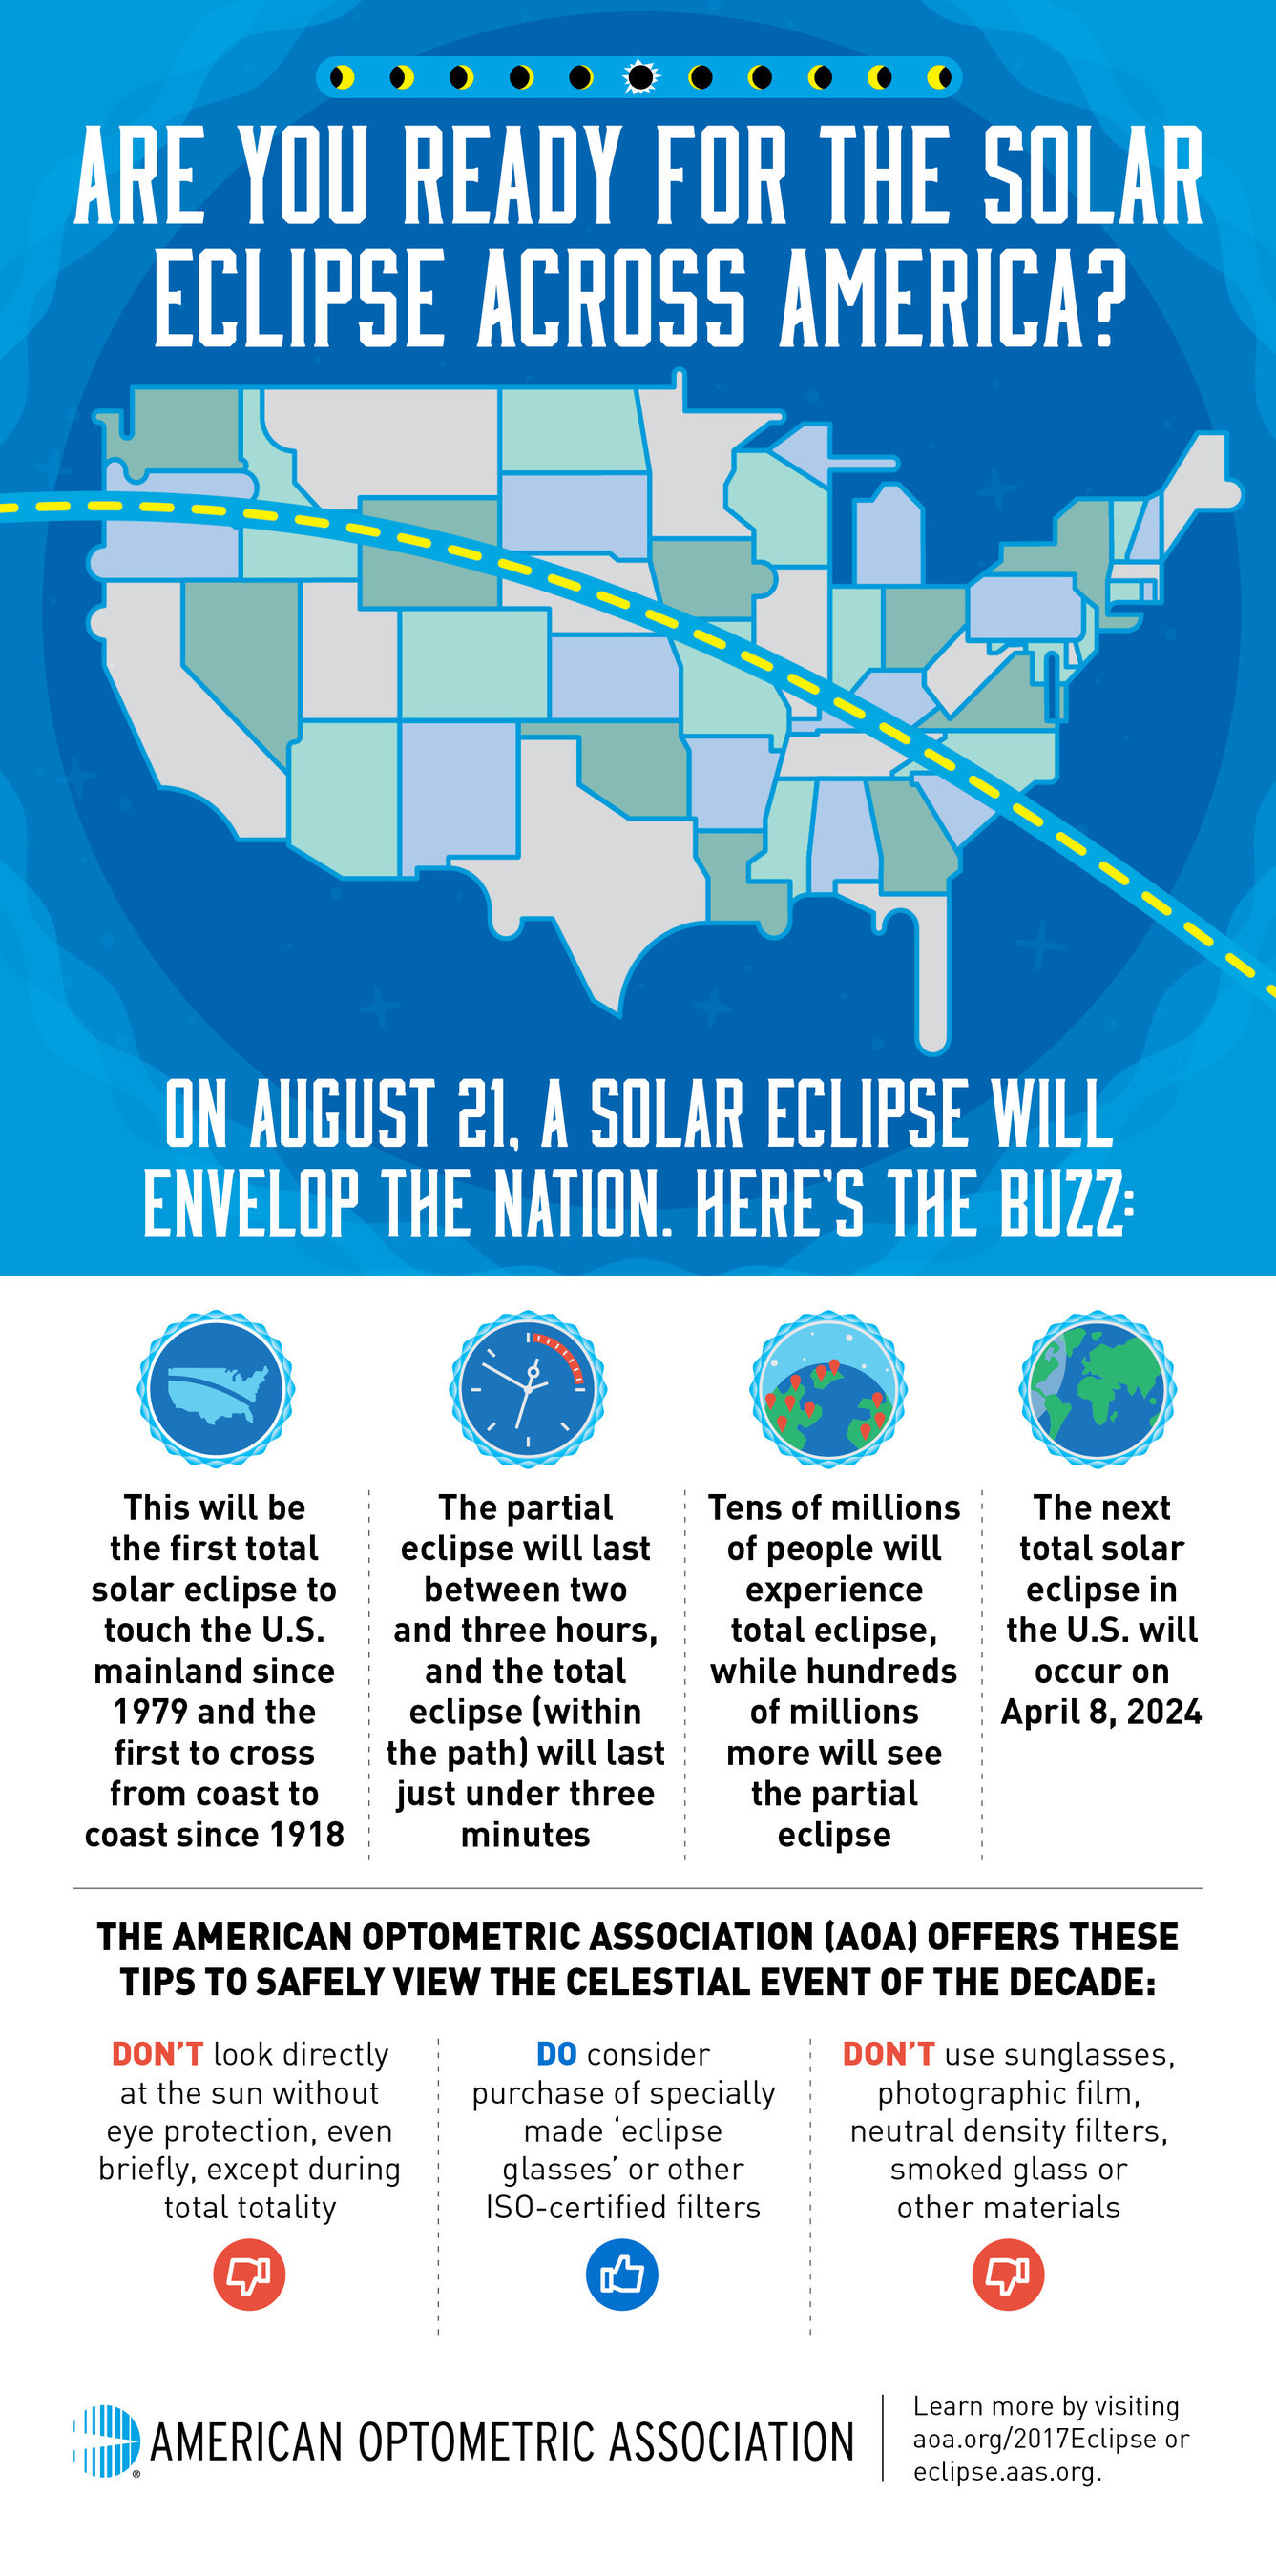 Are You Ready for the Solar Eclipse Across America?